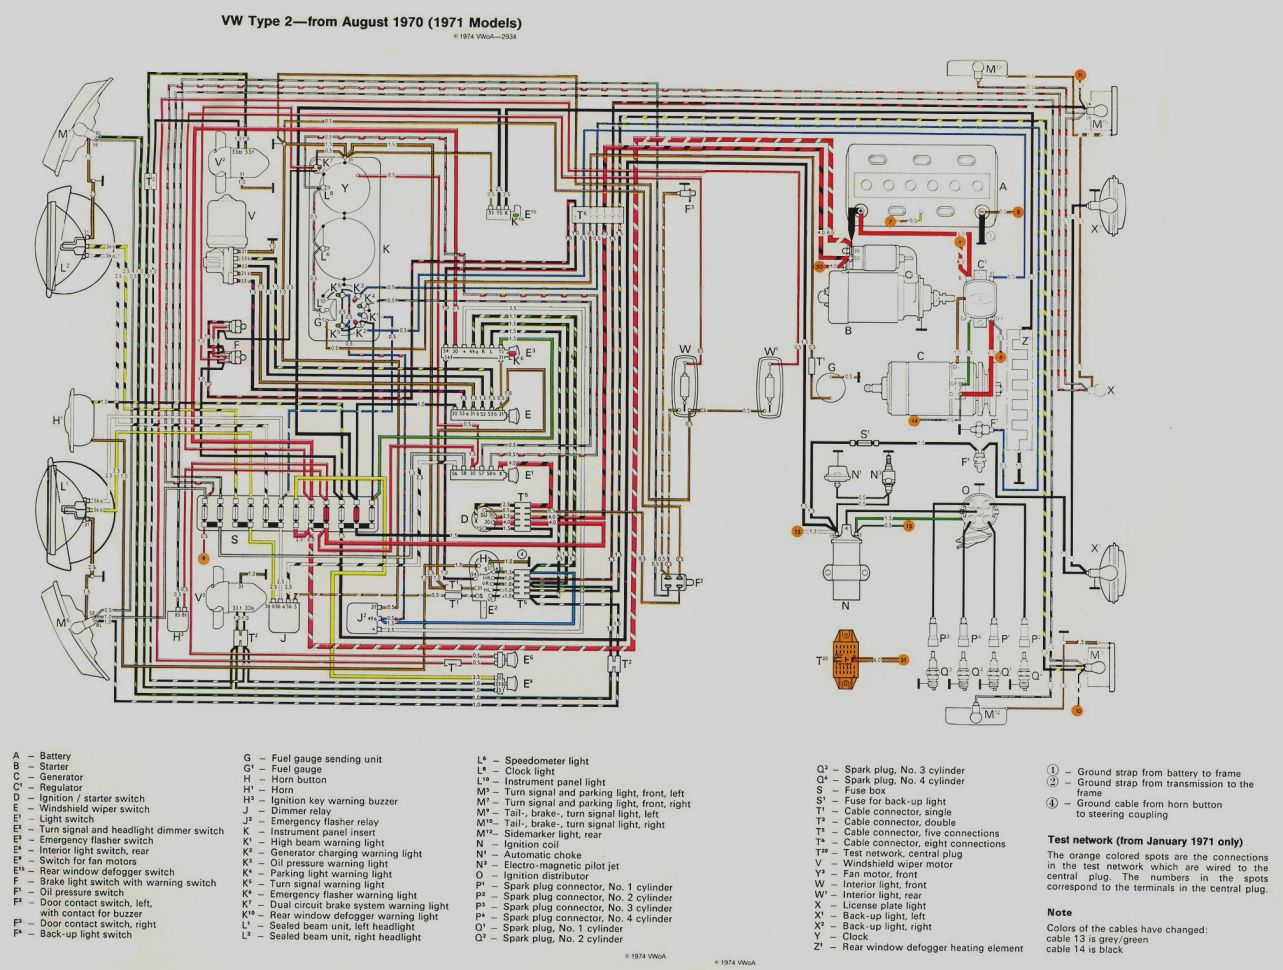 vw touran wiring diagram -split on 3 way schematic wiring diagram | begeboy wiring  diagram source  begeboy wiring diagram source